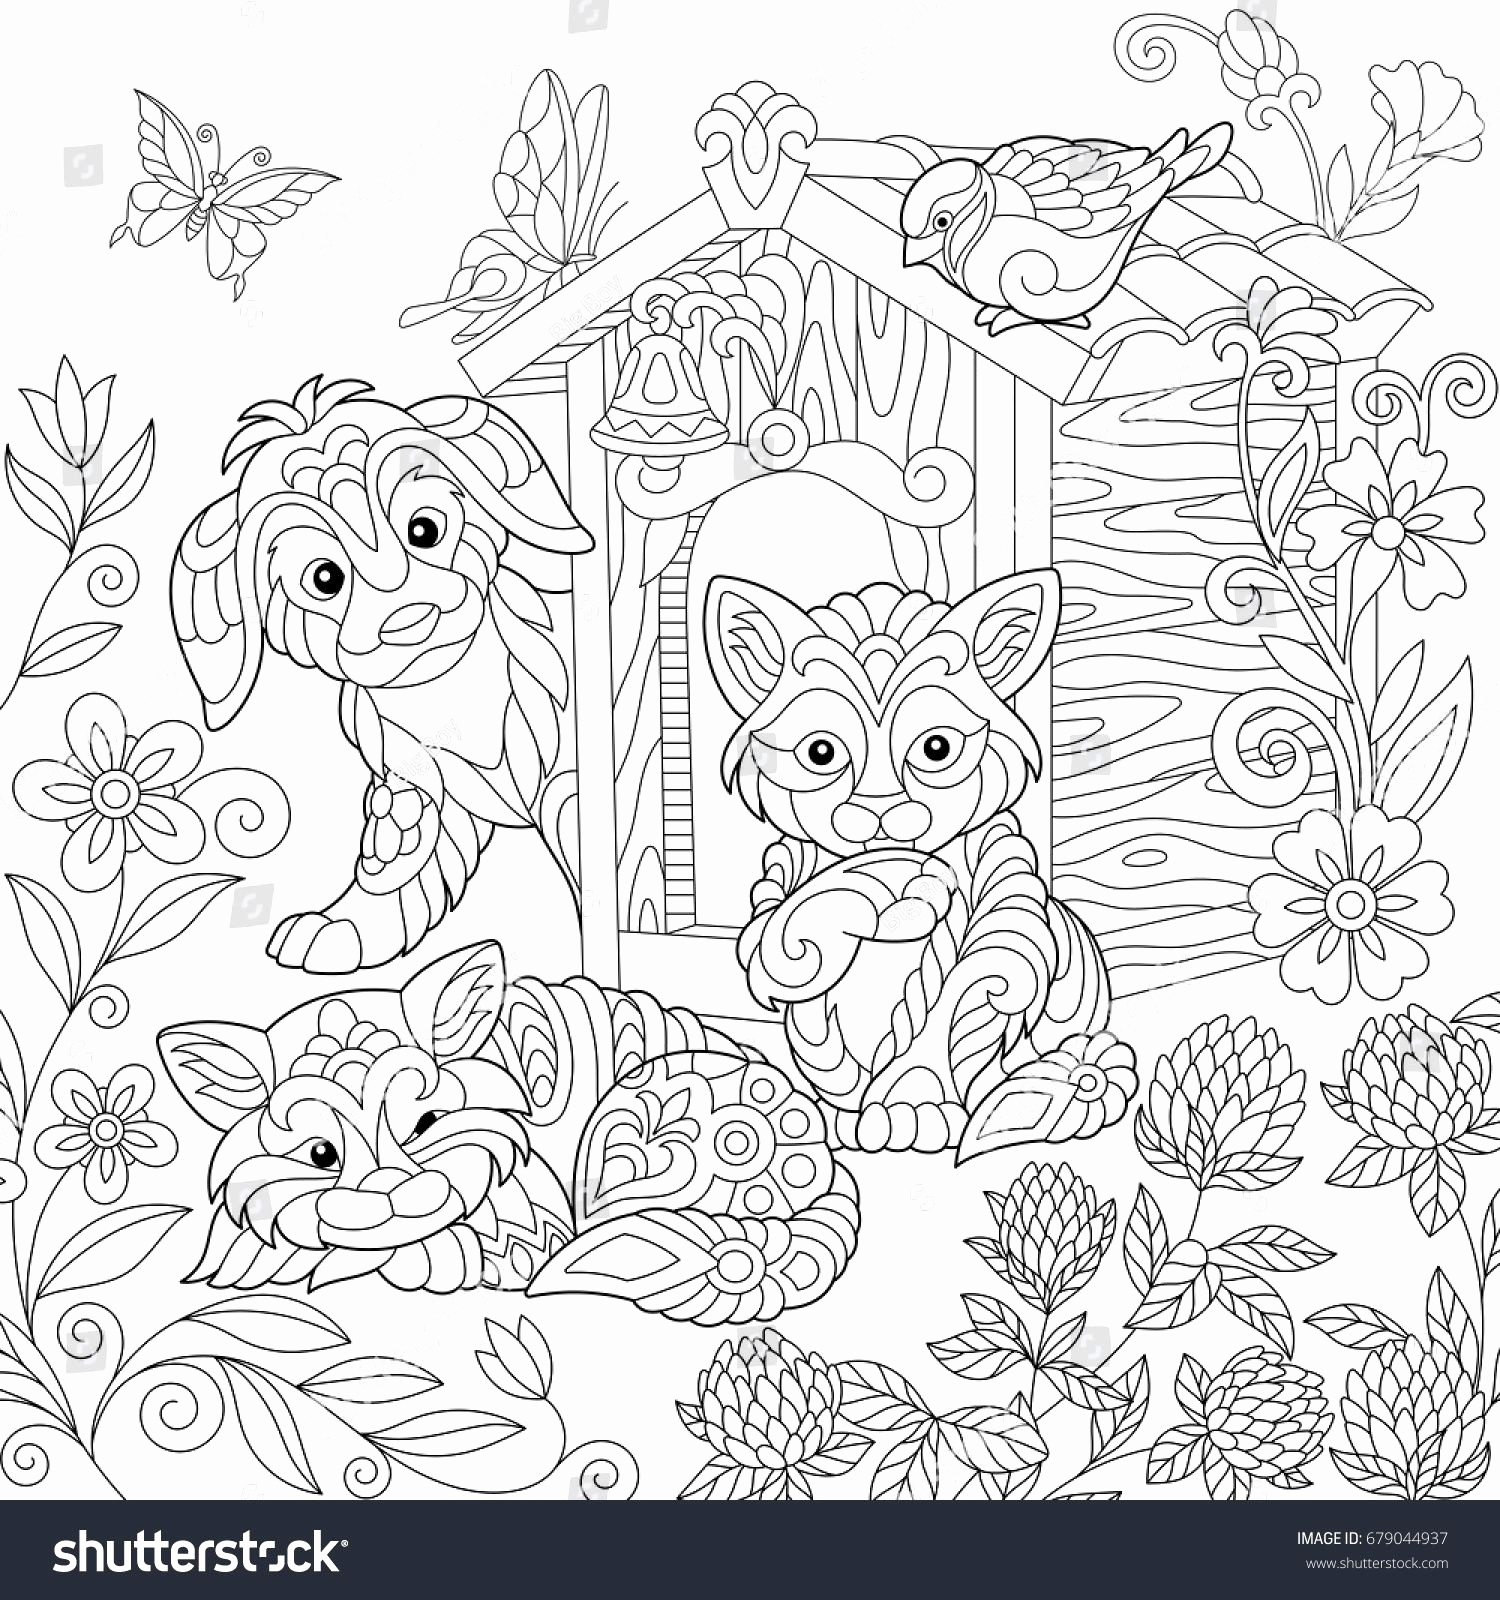 Bulldog Coloring Pages Printable  Gallery 1e - Save it to your computer